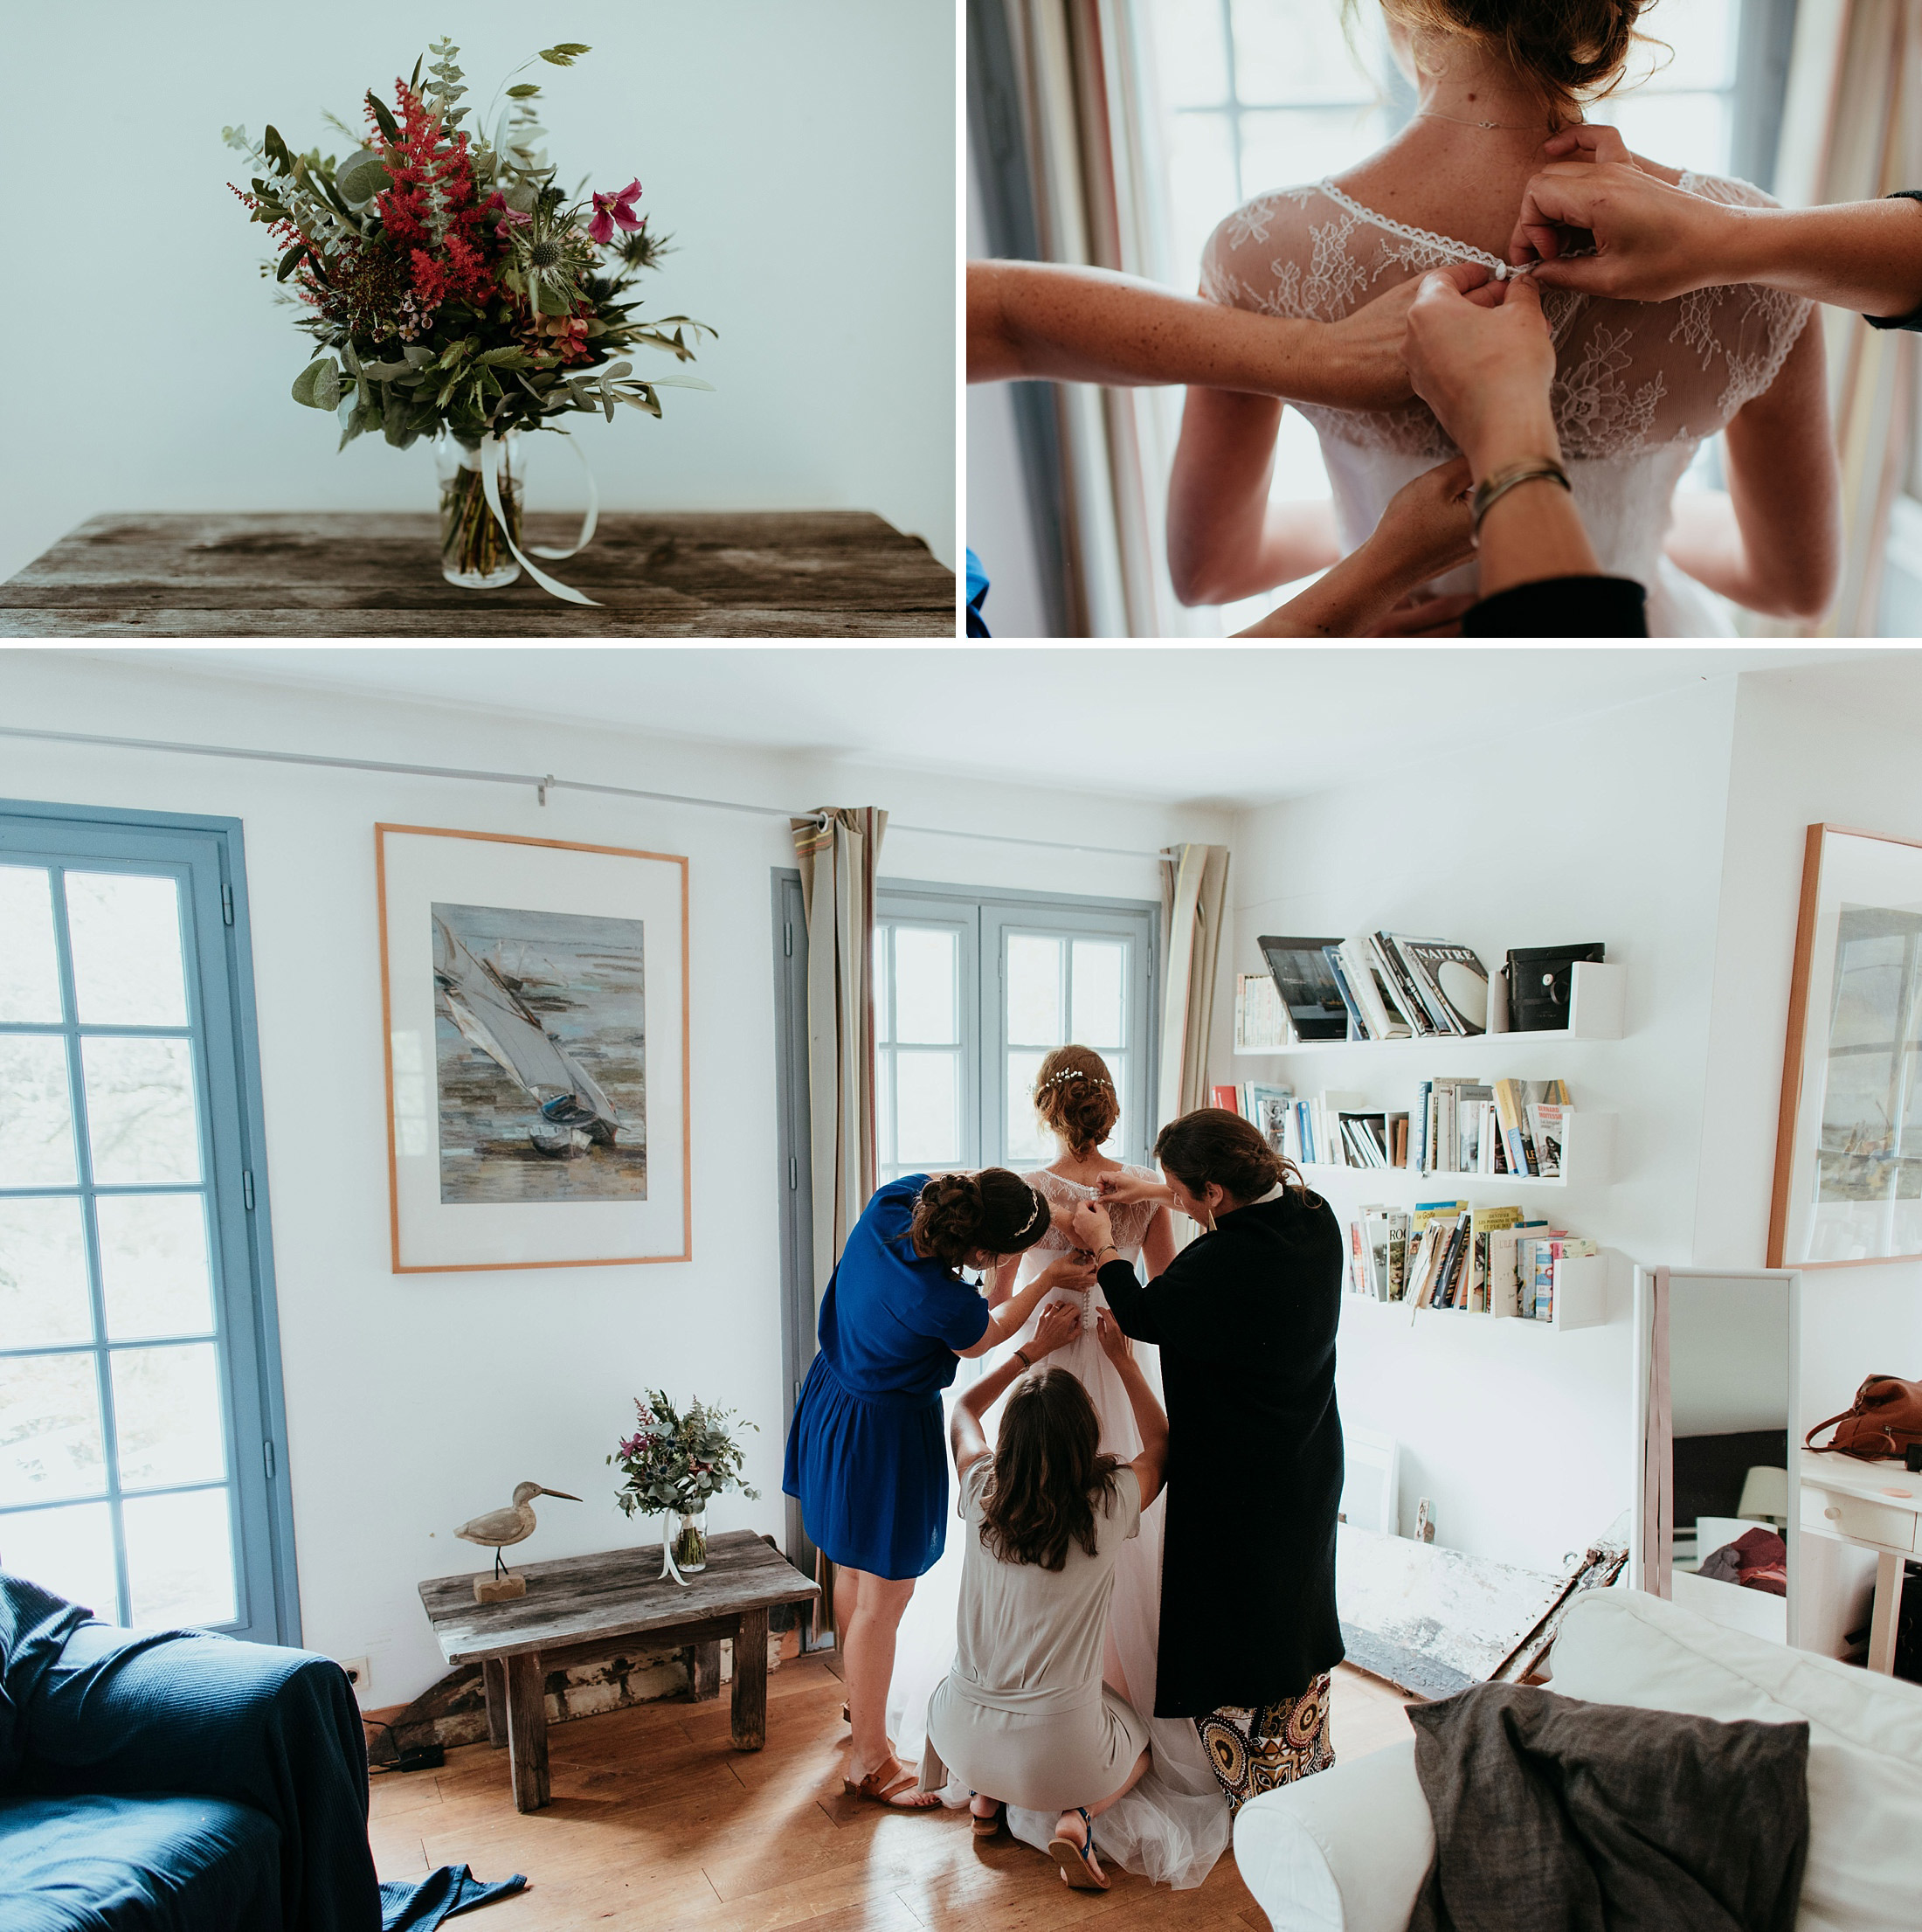 Mariage-storytelling-IleauxMoines-charlesseguy12